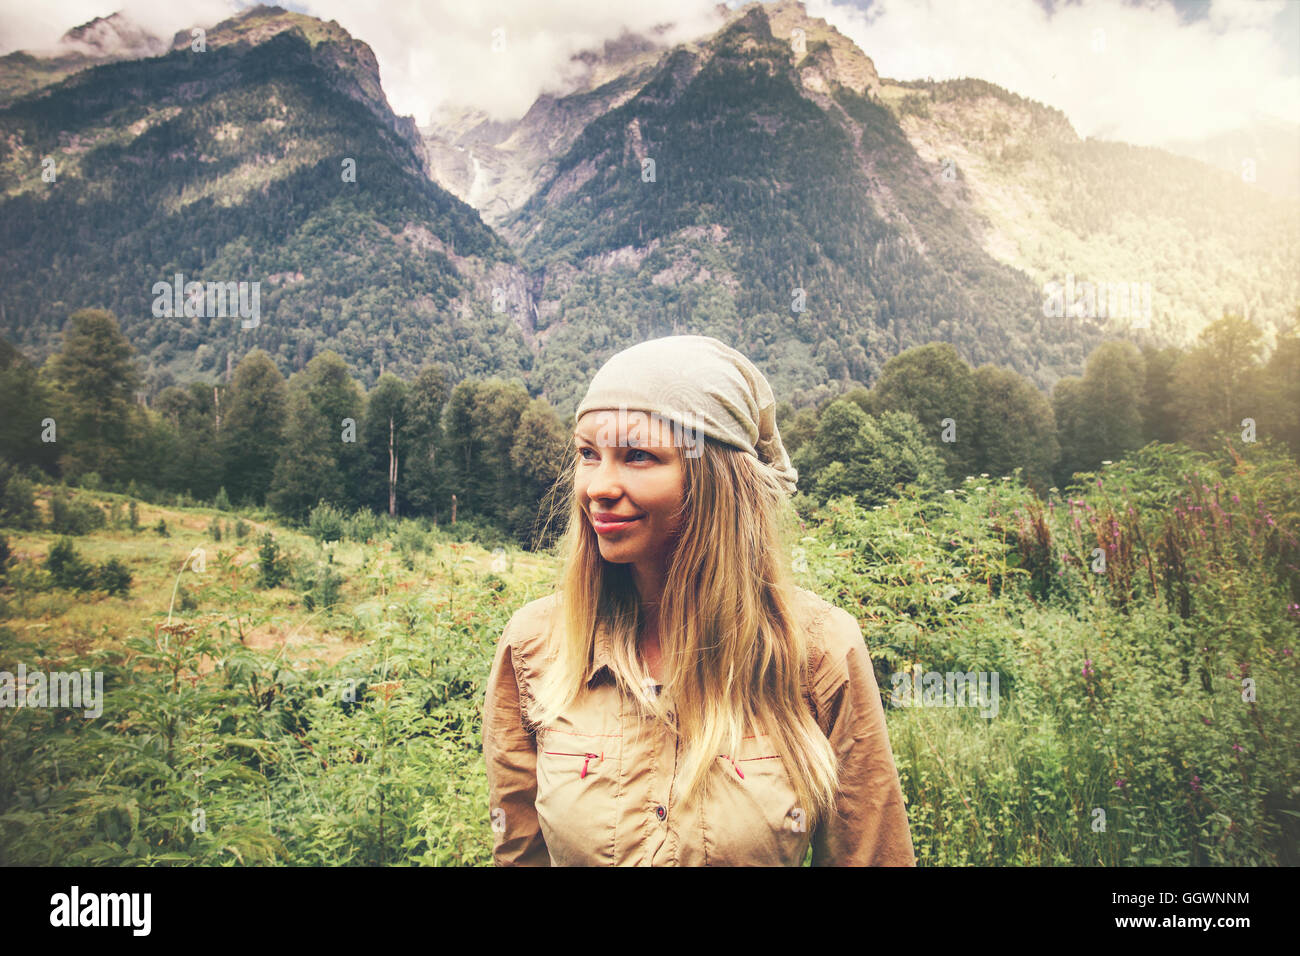 Young Woman happy smiling enjoying mountains landscape Travel Lifestyle concept harmony with nature summer vacations - Stock Image